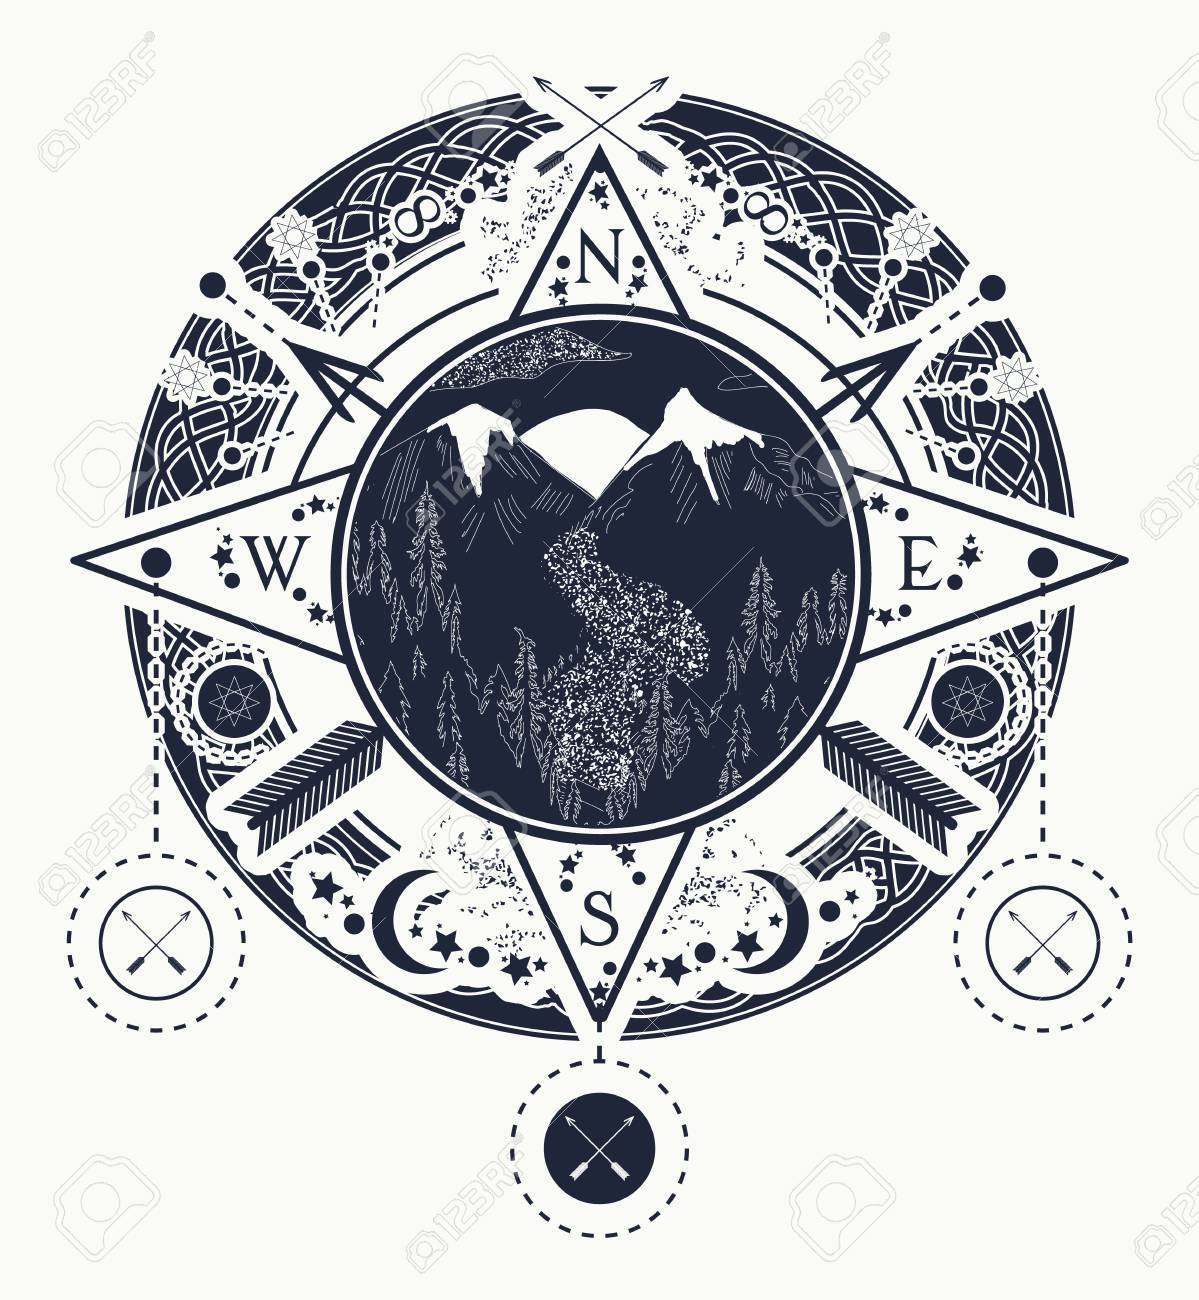 Mountain wind rose compass tattoo art. Tattoo for camping, tracking and hiking. Travel, adventure, outdoors, meditation symbol. Road in the mountains - 78086089